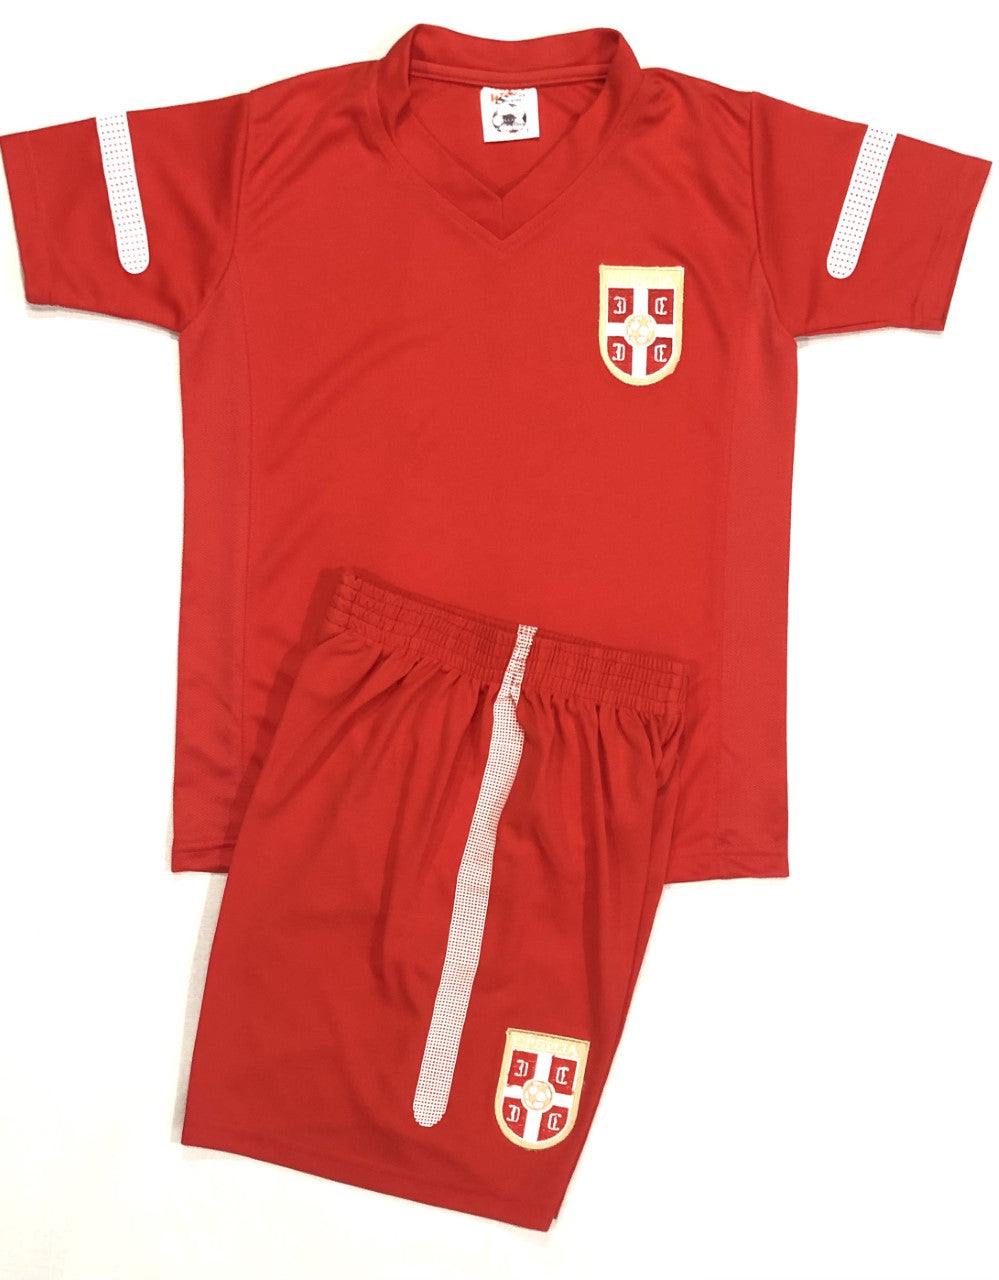 SERBIA HOME WORLD CUP 2014 KIDS 2-PIECE SOCCER SET